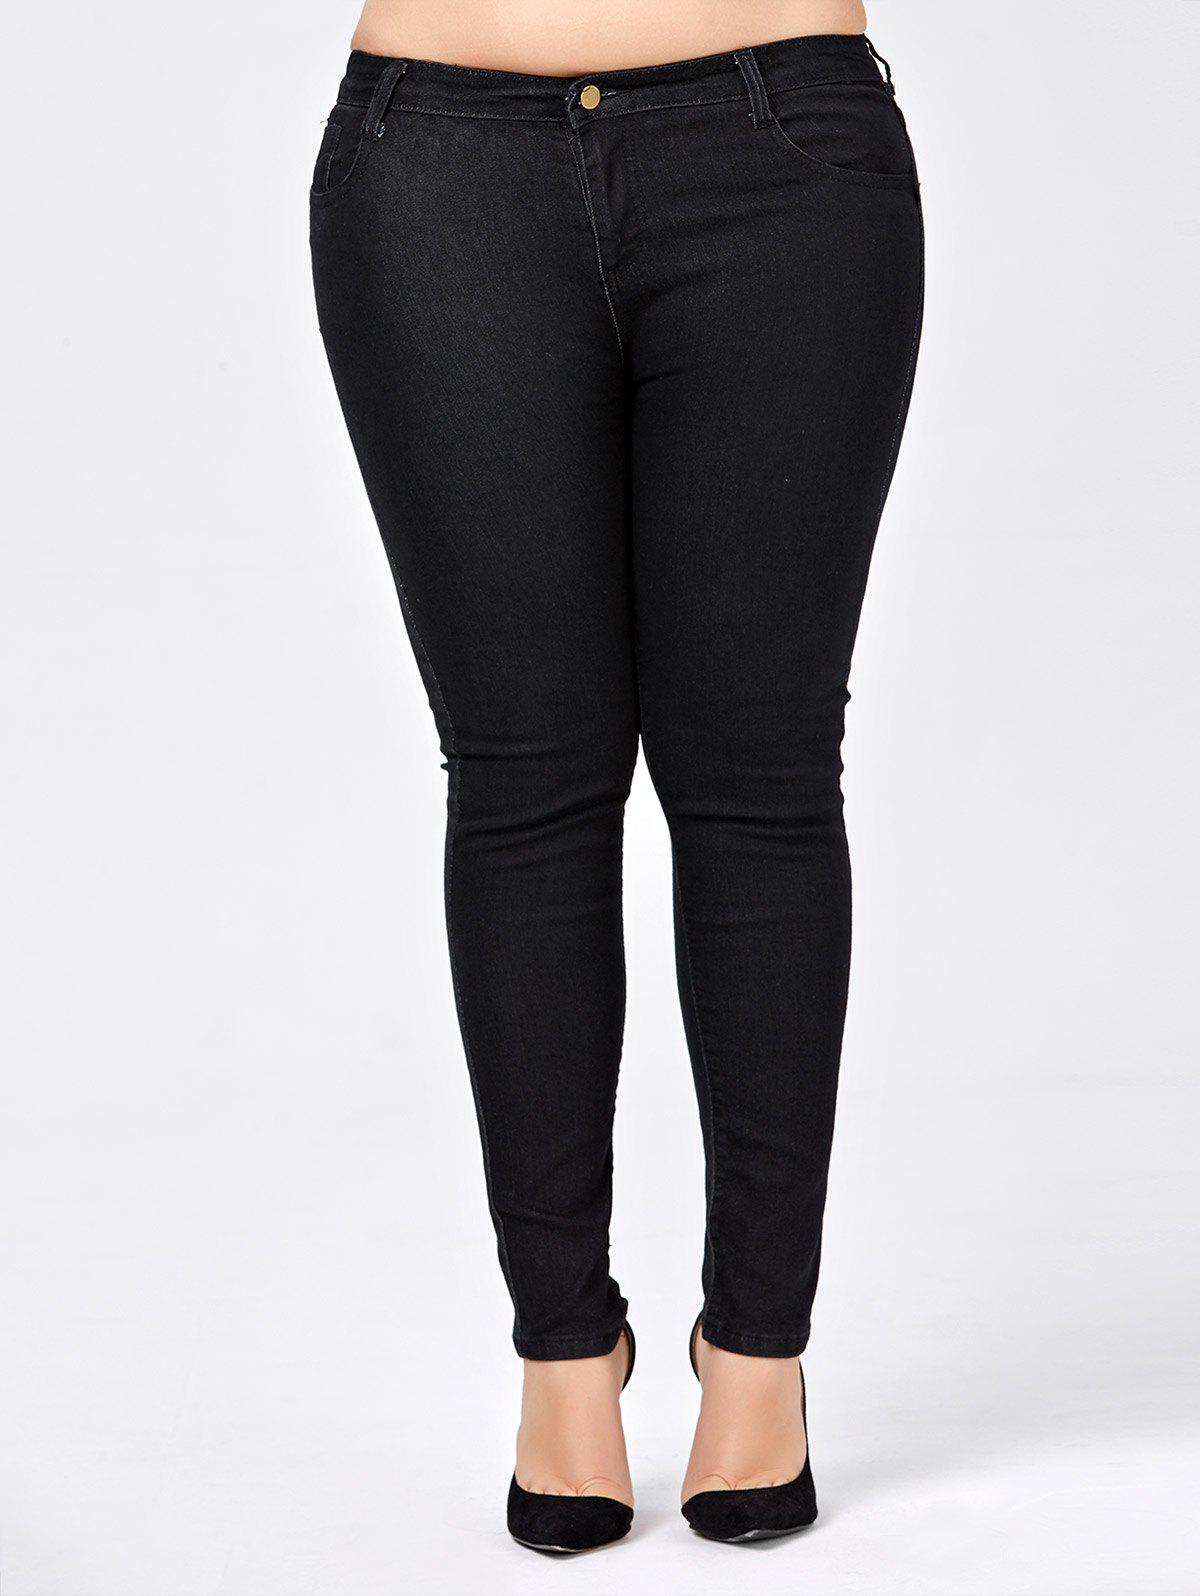 Shop Plus Size Skinny Jeans with Pocket